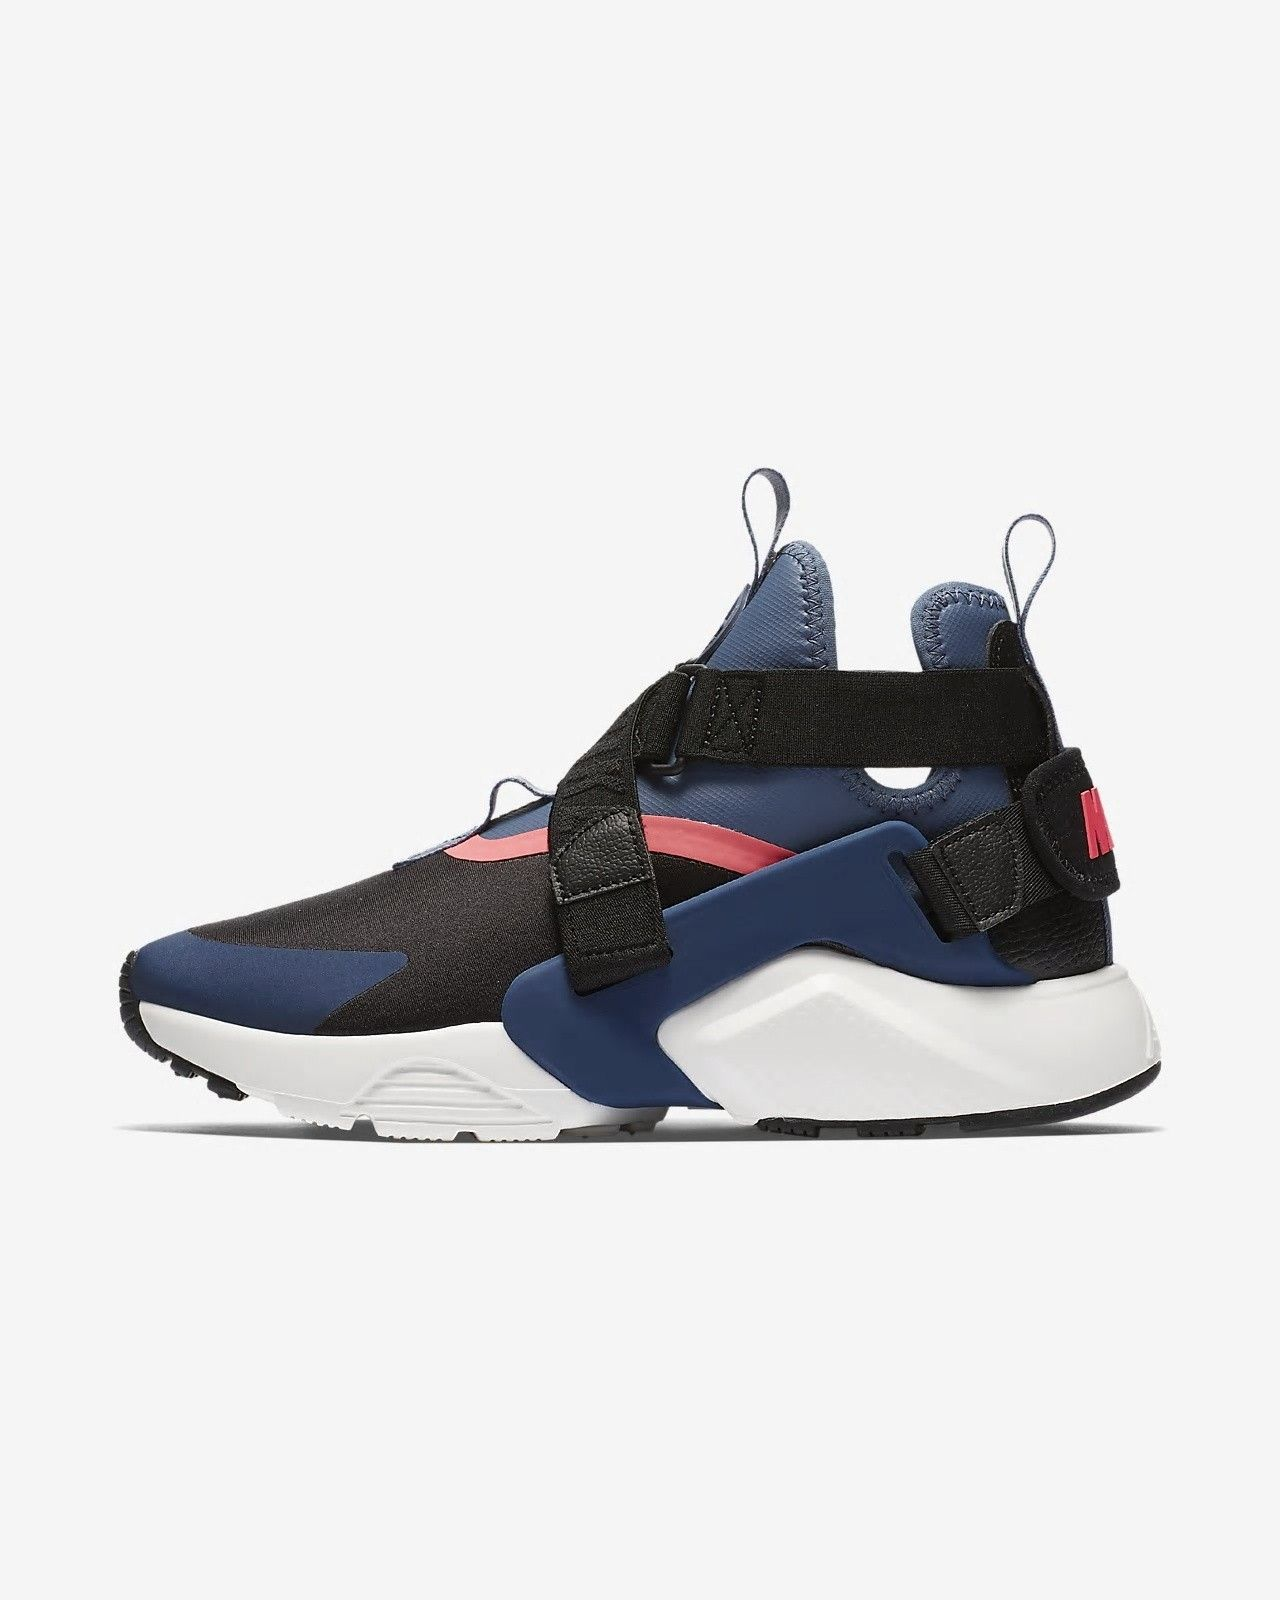 super popular 4975a 8d877 Nike Air Huarache City Black Diffused Blue Racer Pink Navy Women s  Lifestyle Shoes AH6787-002